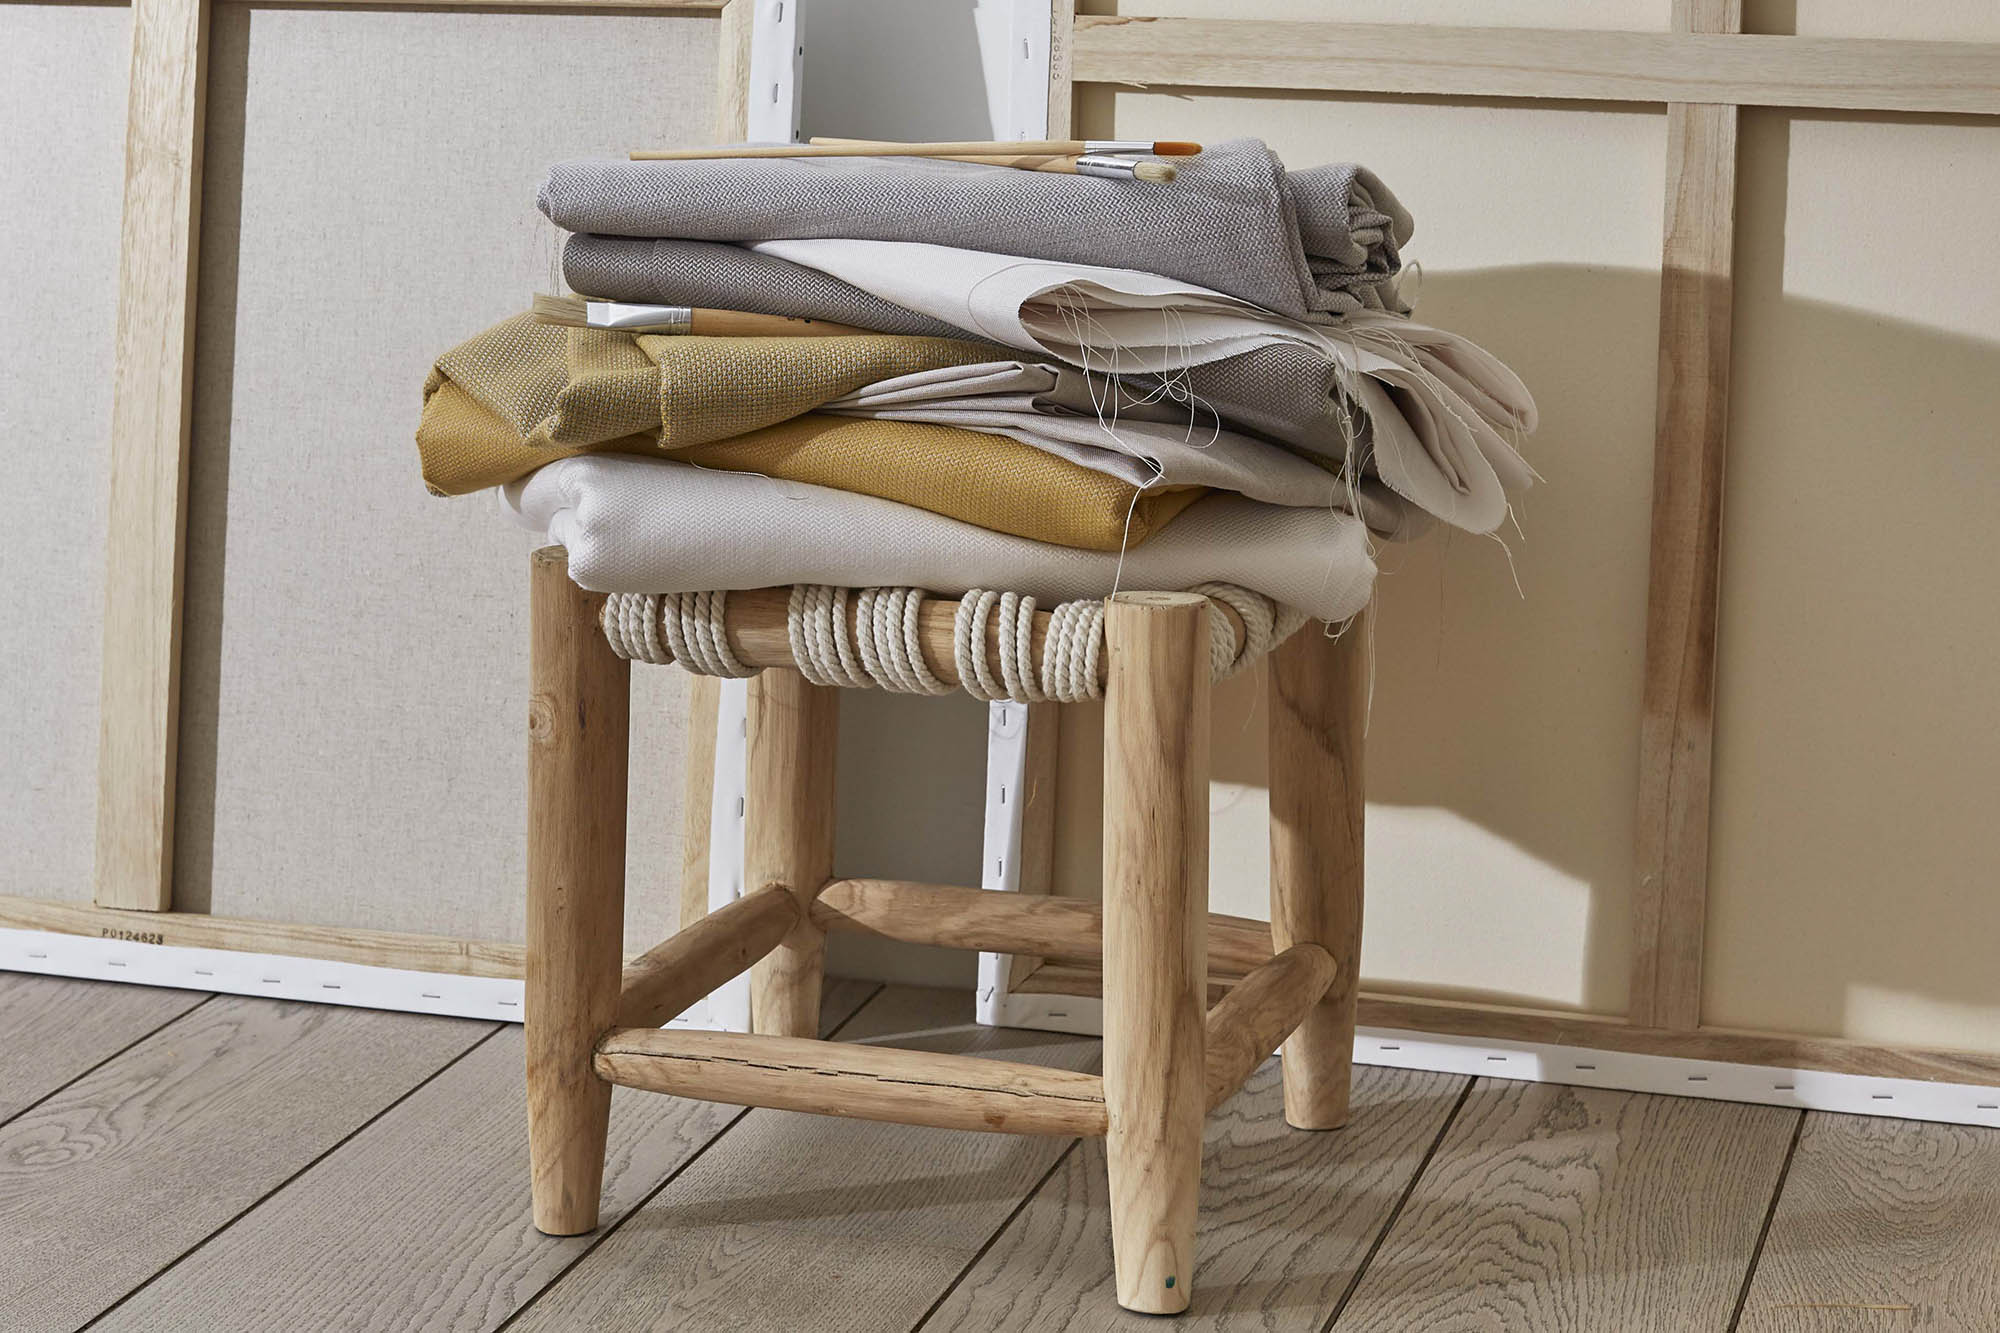 stack of folded sunbrella fabrics on stool